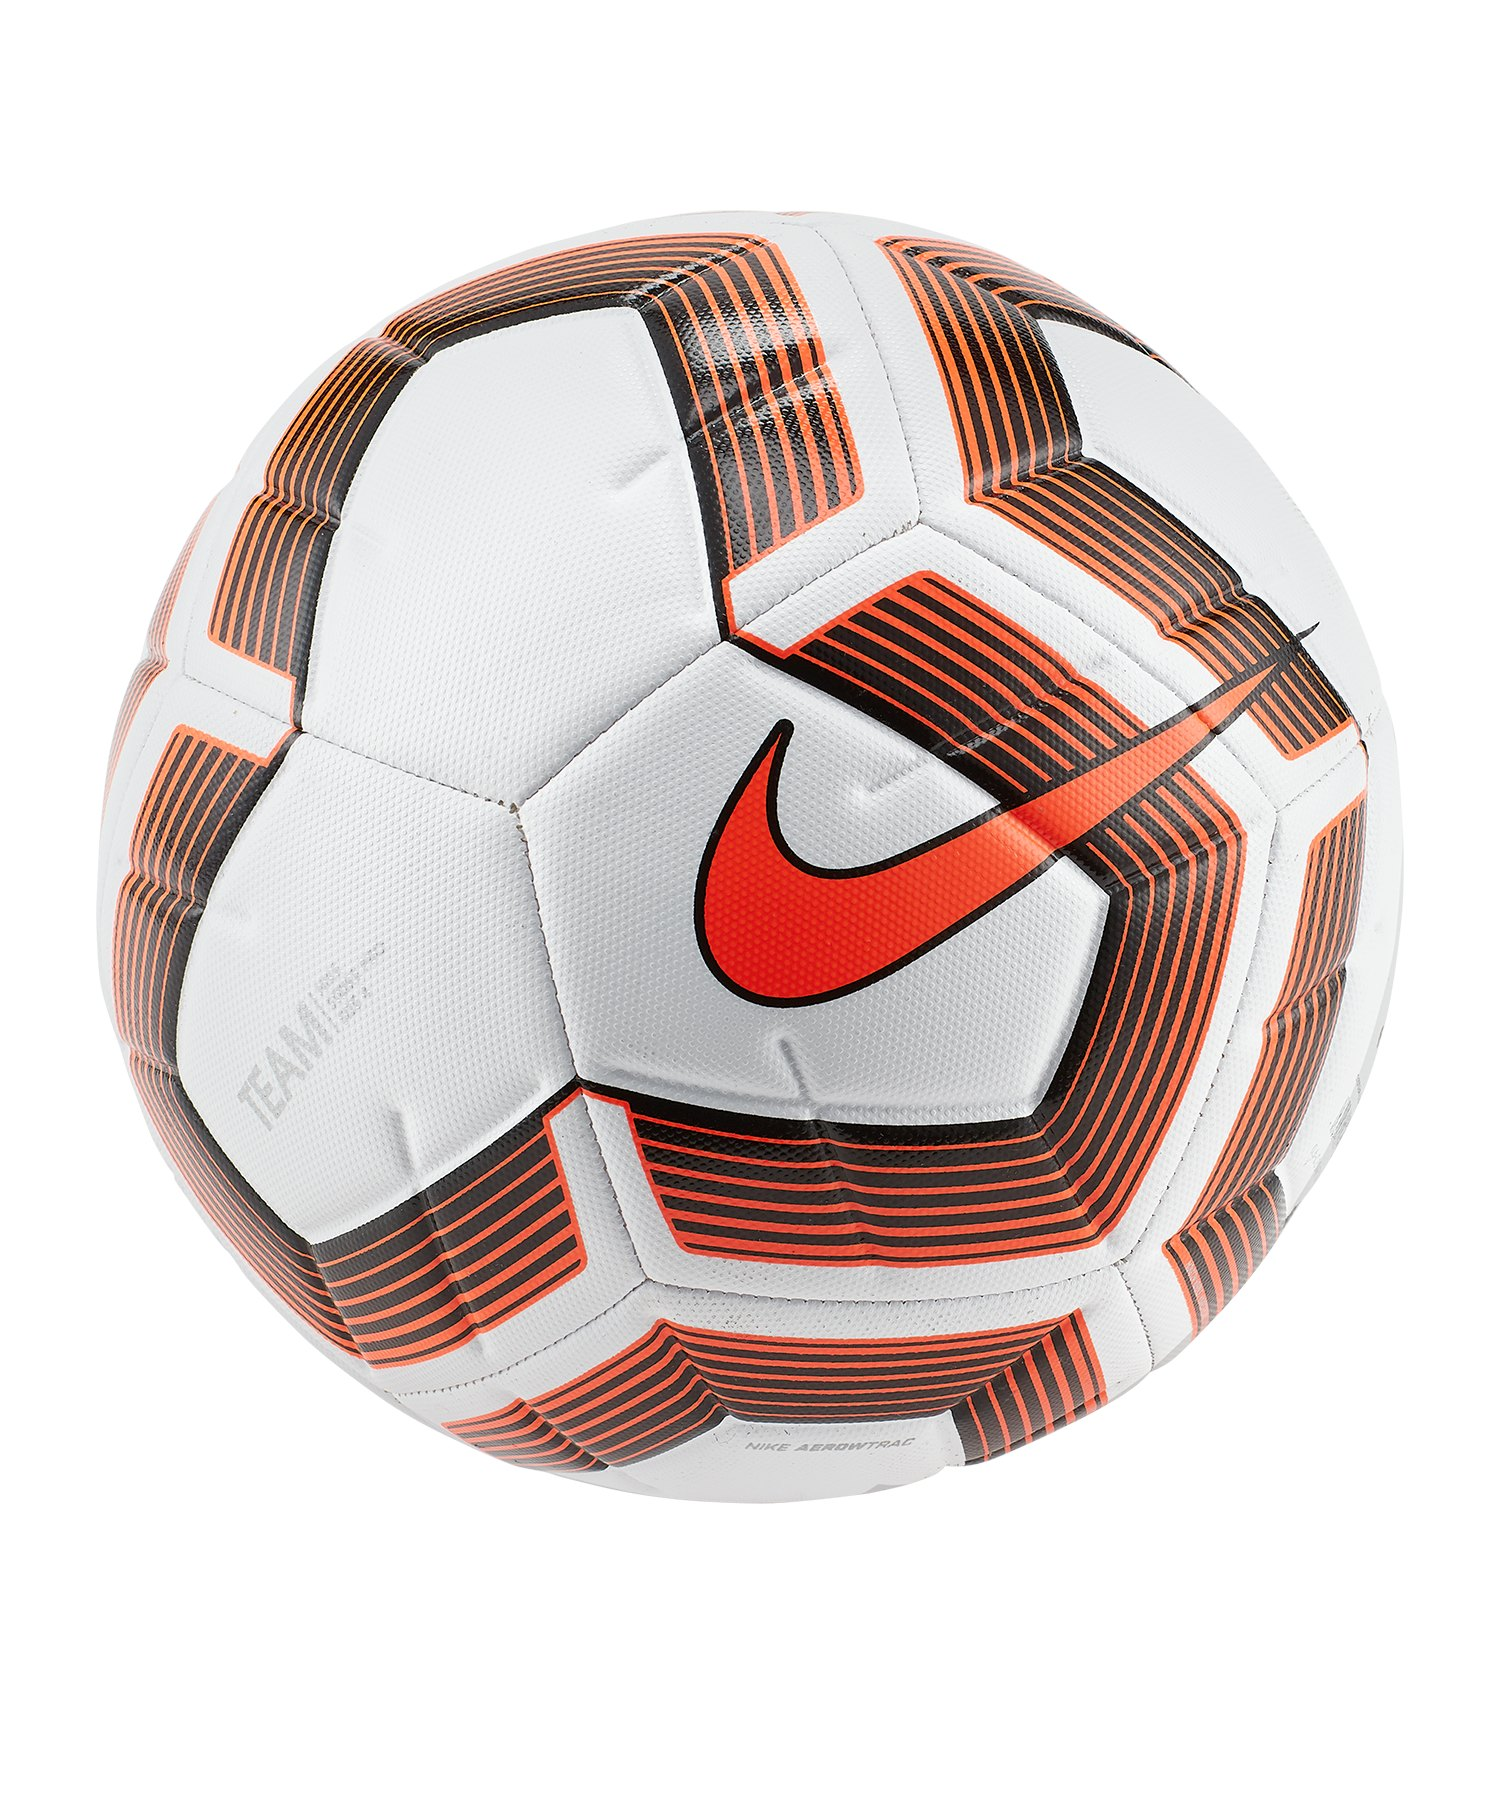 Nike Strike Pro Trainingsball Weiss F101 - weiss